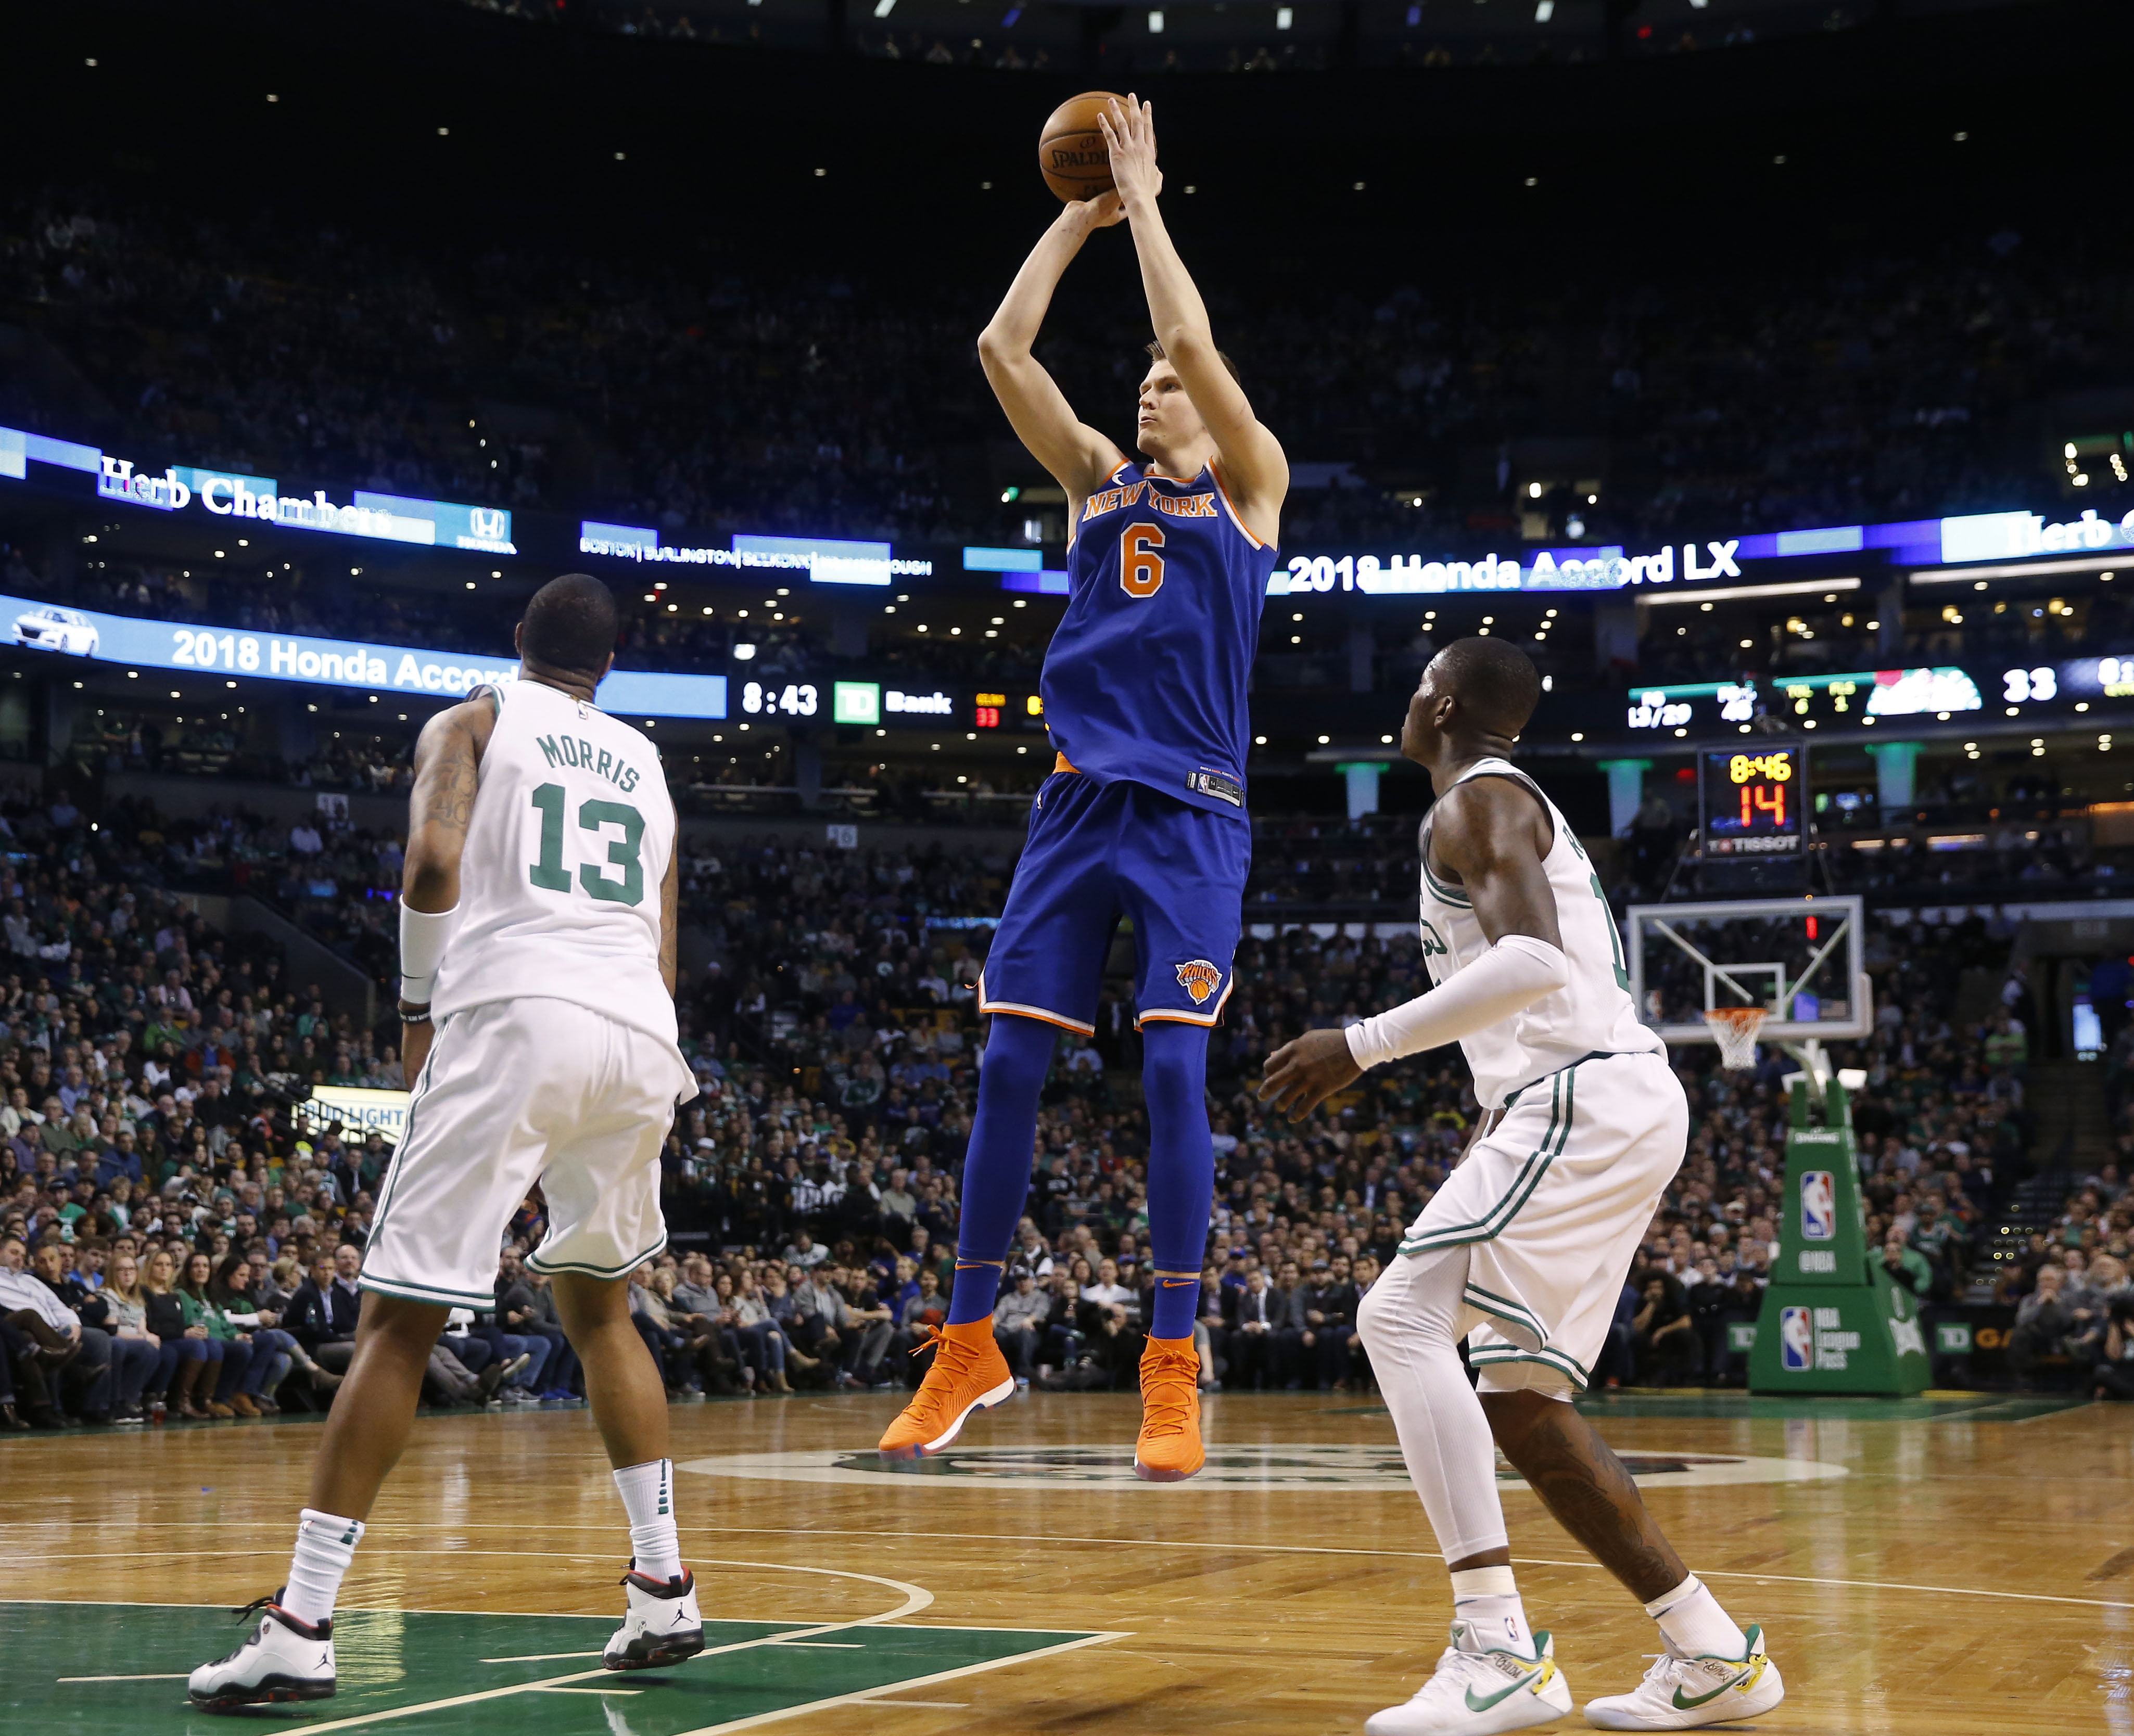 Kristaps Porzingis To Defend Skills Challenge Title During NBA All-Star Weekend